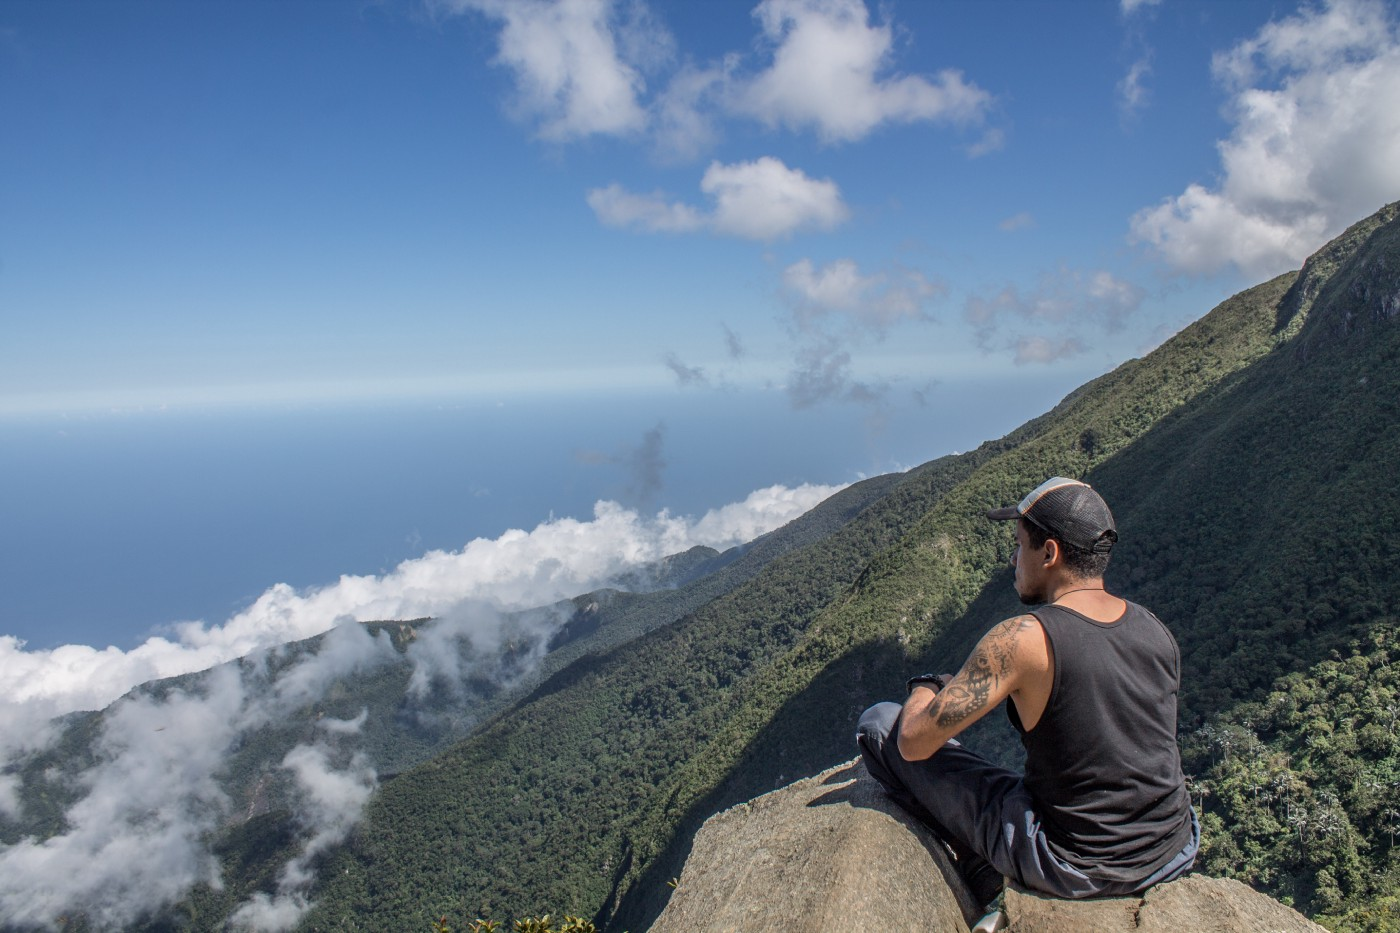 Photo of a man perched on a mountain looking out over an ocean.